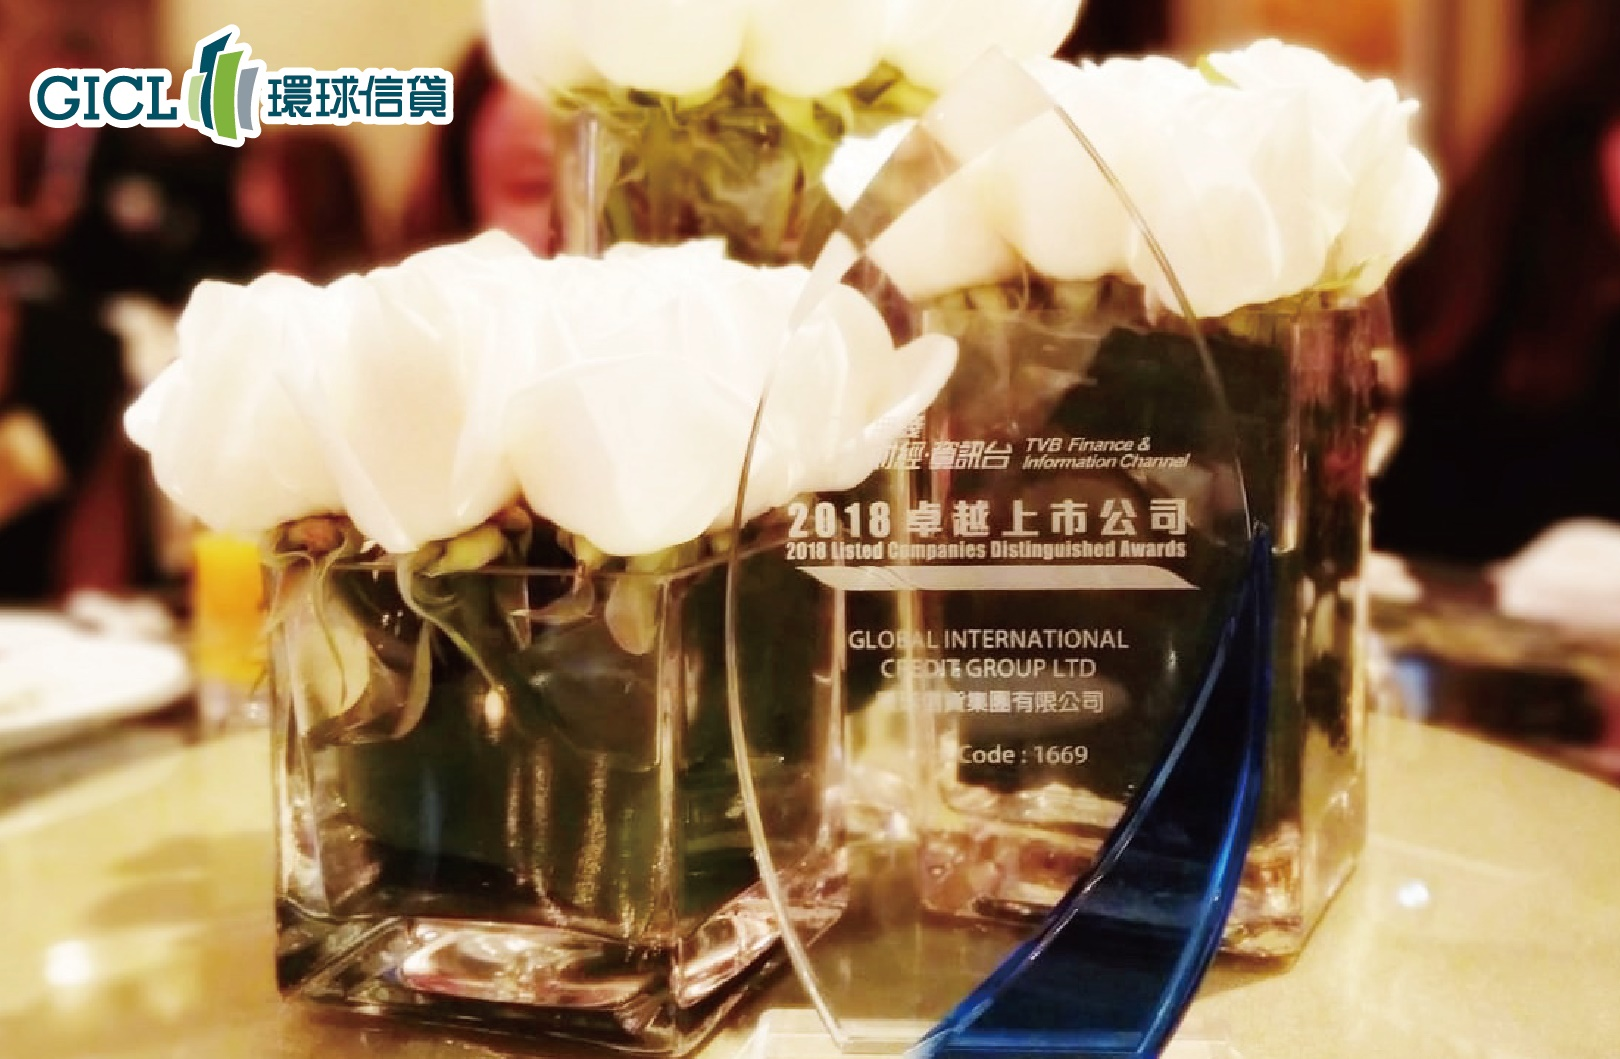 GICL – LISTED COMPANIES DISTINGUISHED AWARDS 2018